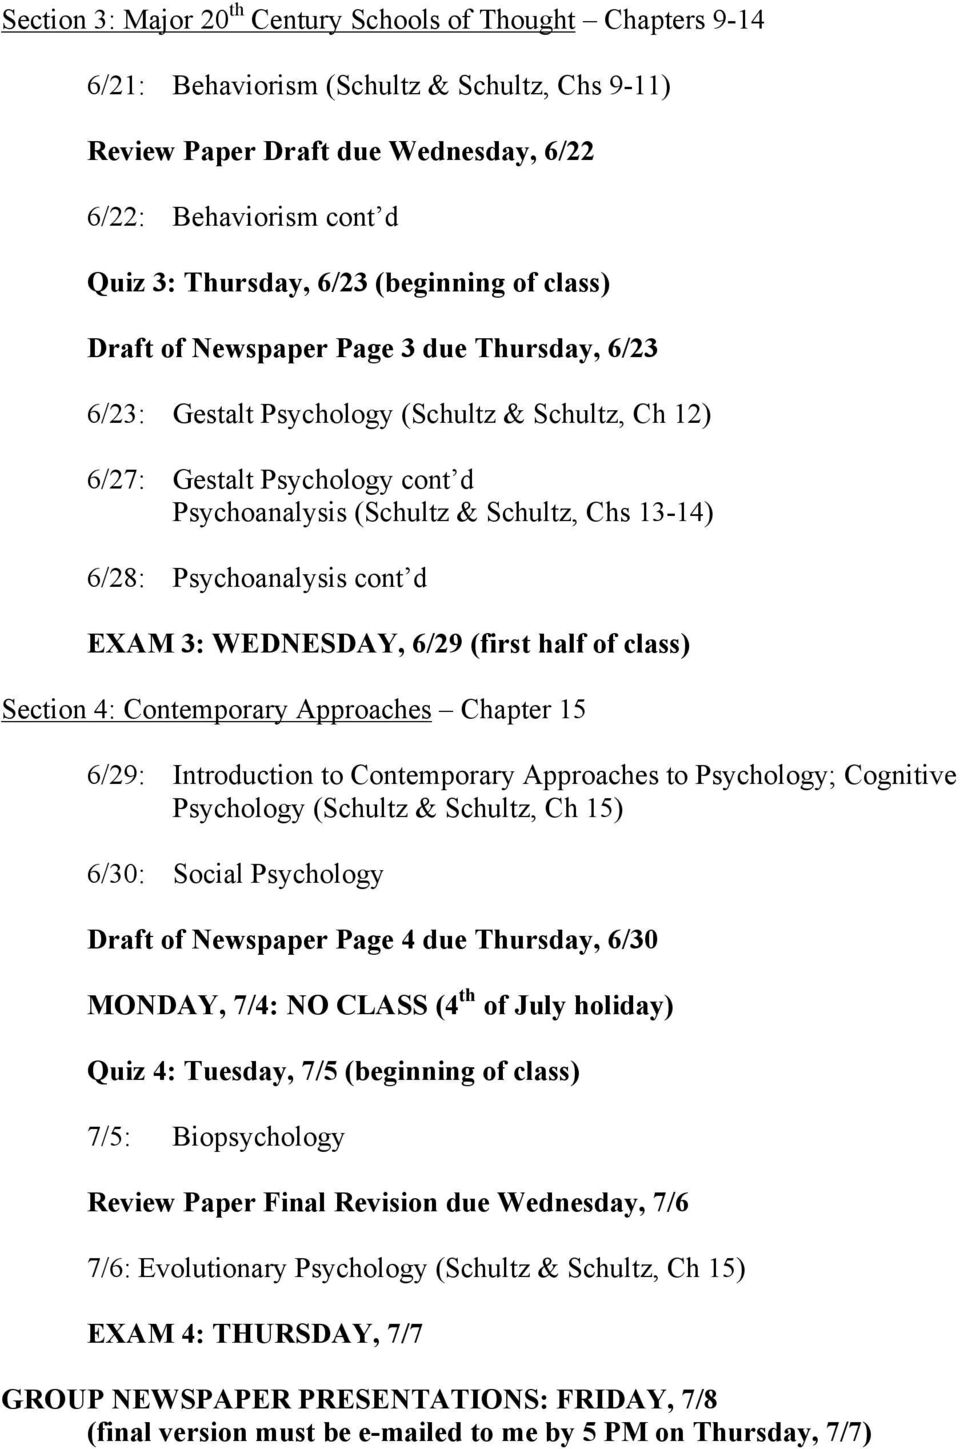 6/28: Psychoanalysis cont d EXAM 3: WEDNESDAY, 6/29 (first half of class) Section 4: Contemporary Approaches Chapter 15 6/29: Introduction to Contemporary Approaches to Psychology; Cognitive